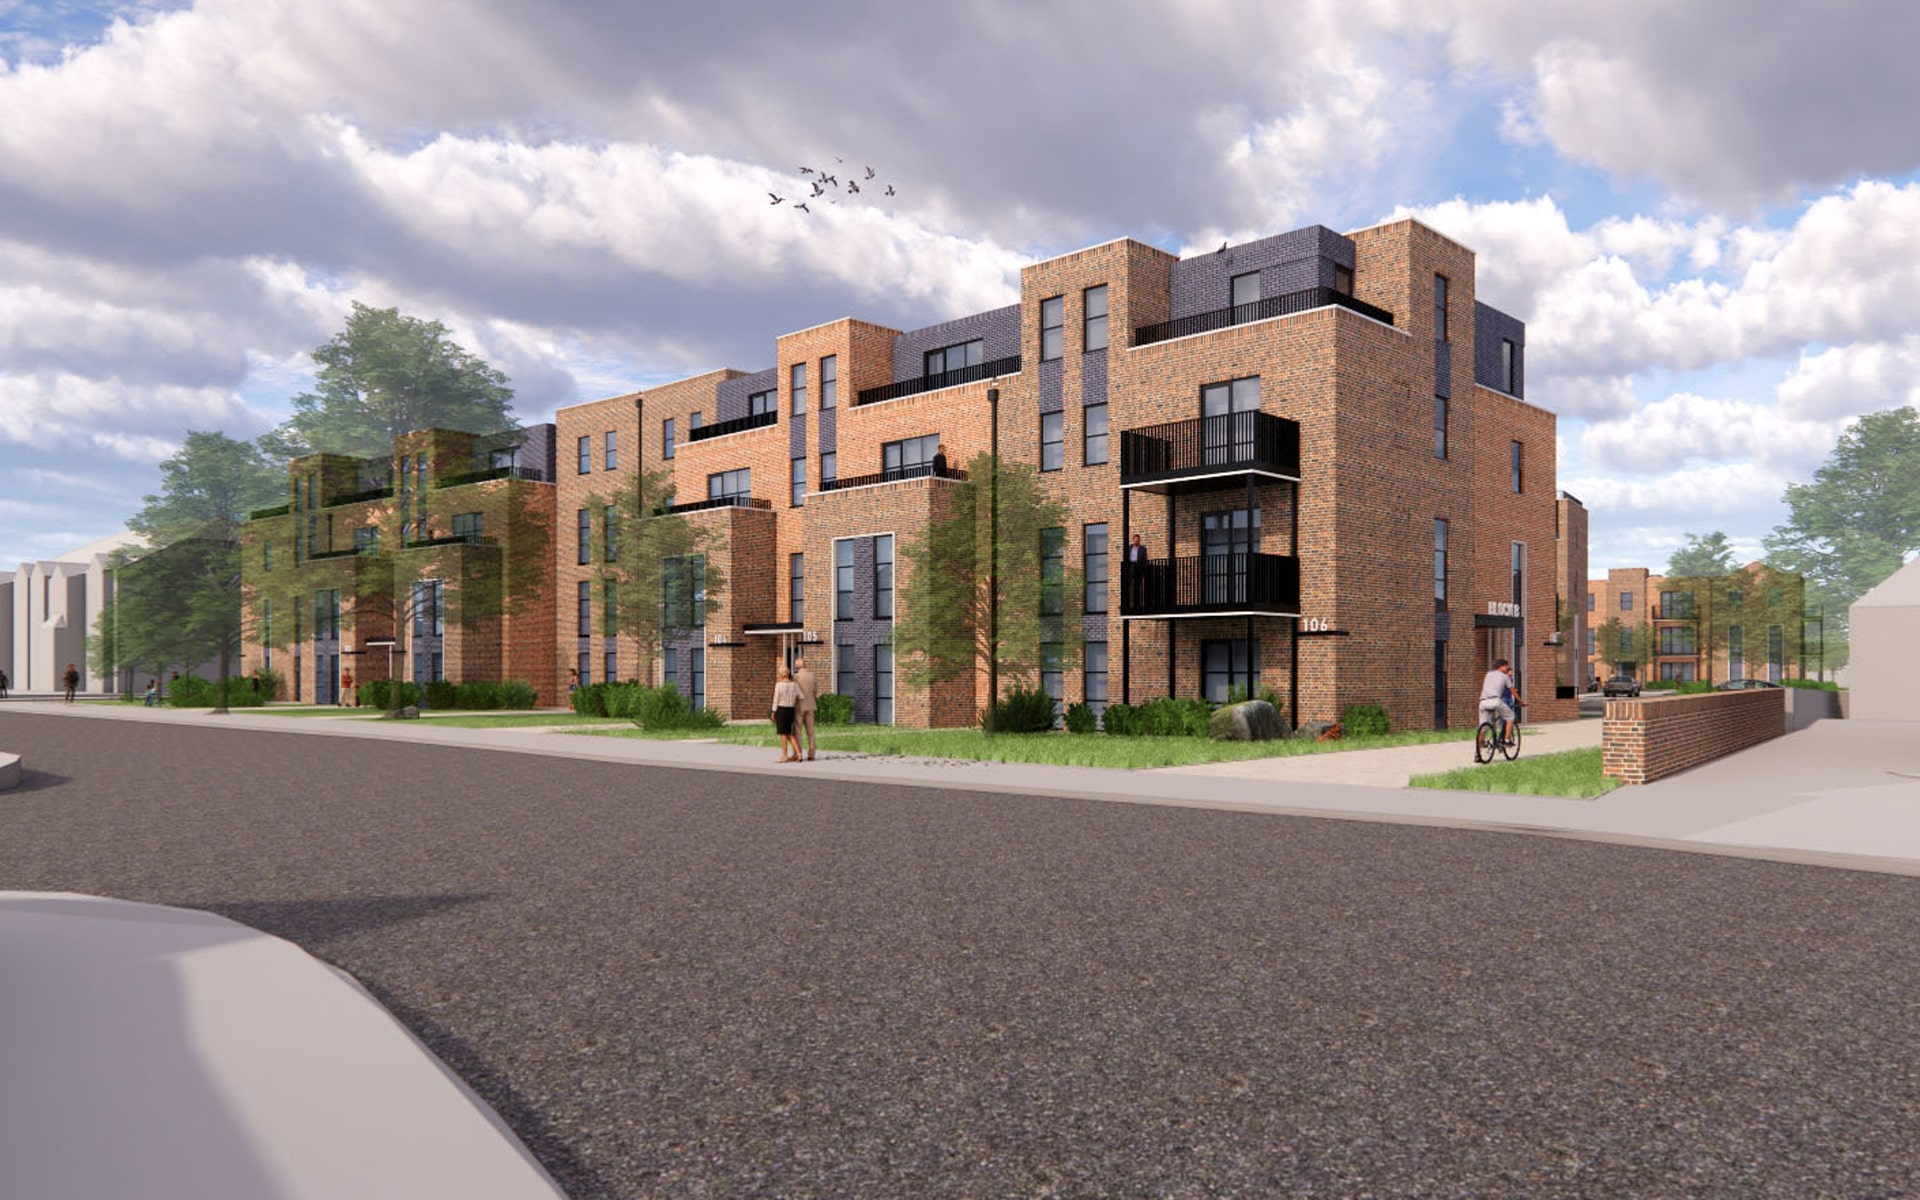 Fairview Homes Arriva Watford